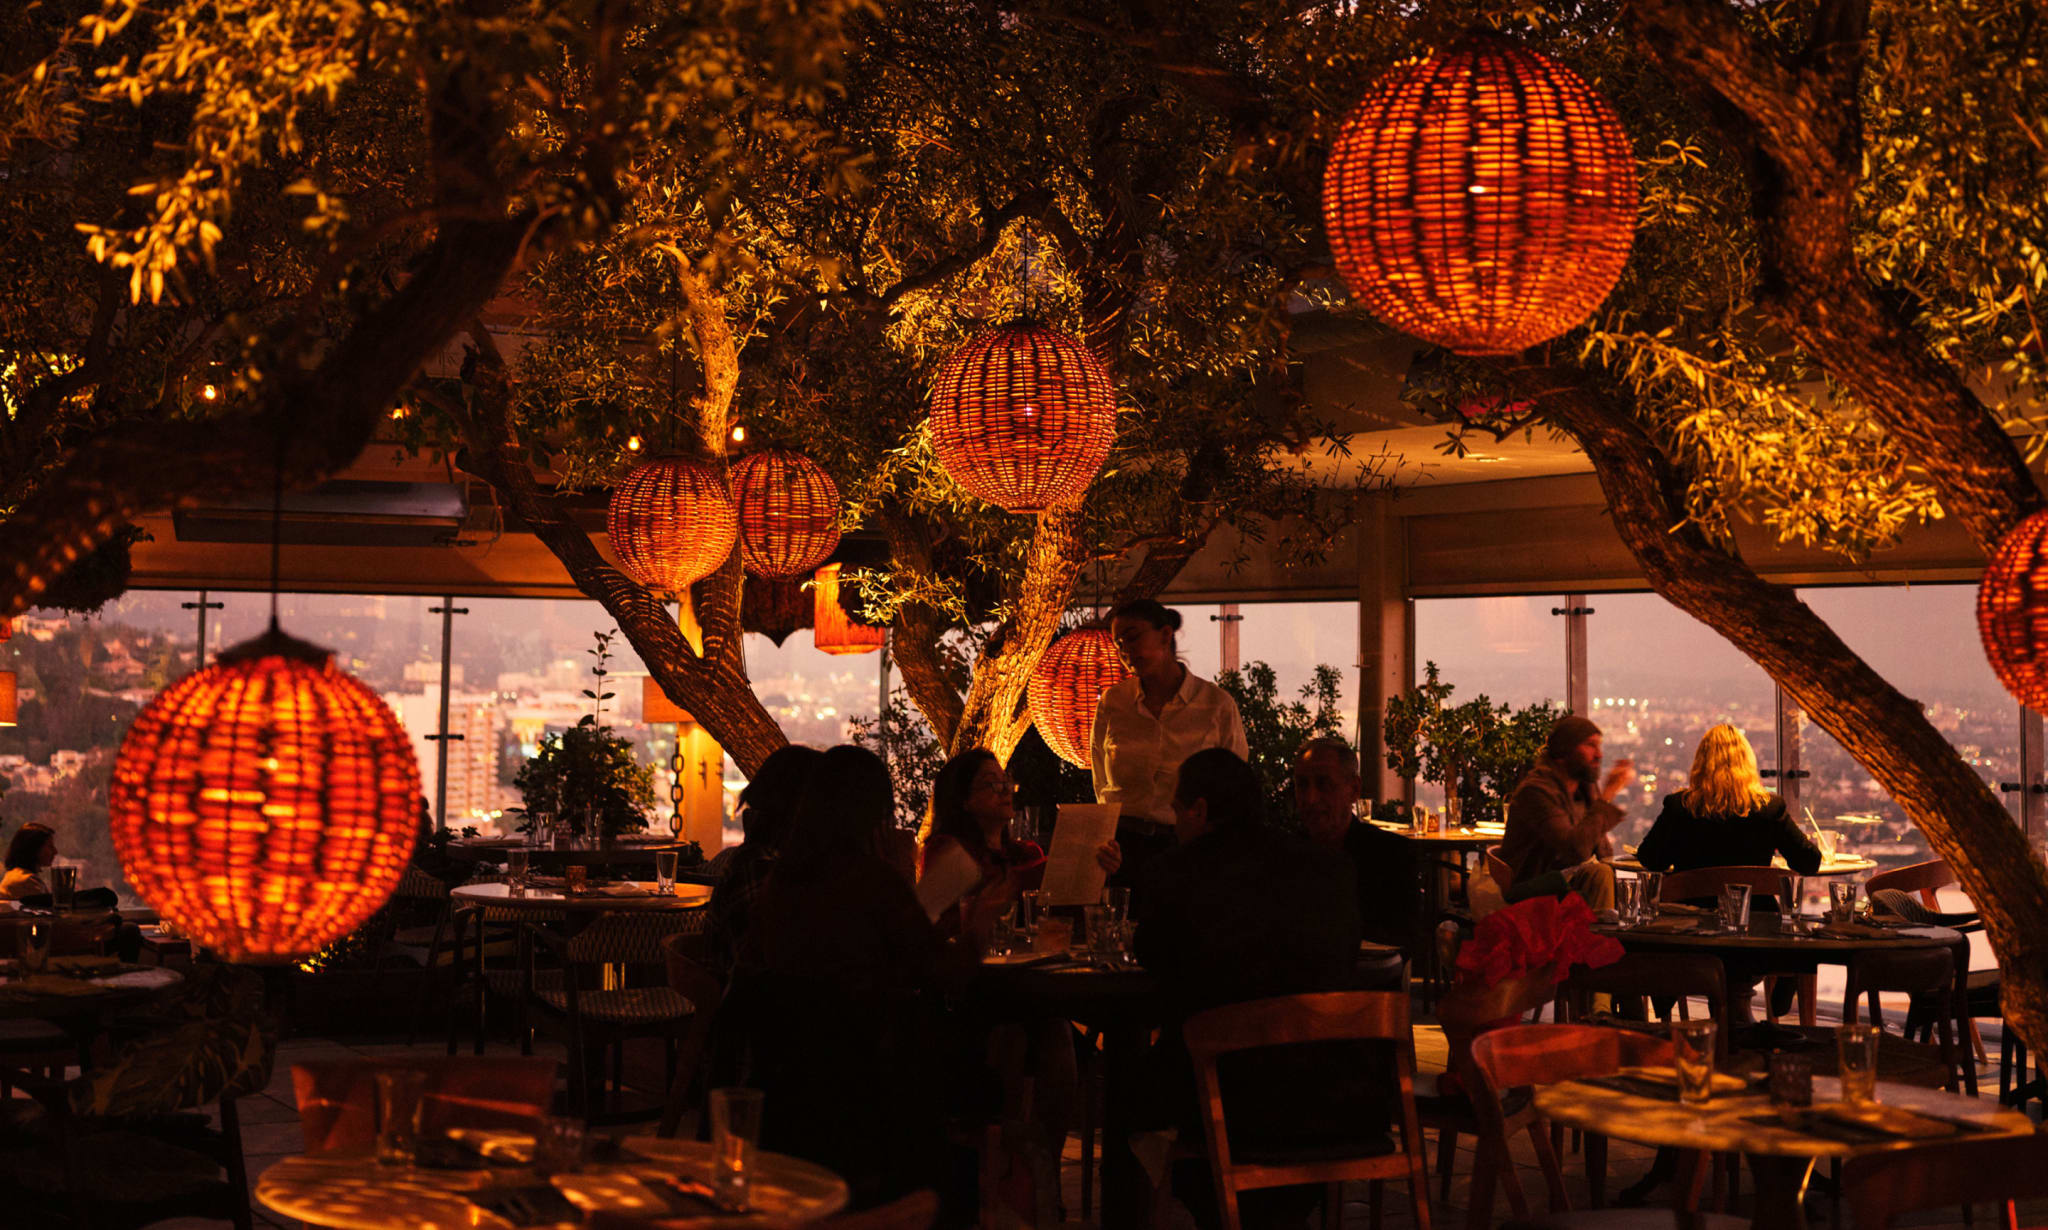 A restaurant with wicker lighting and many trees amongst the tables and chairs.